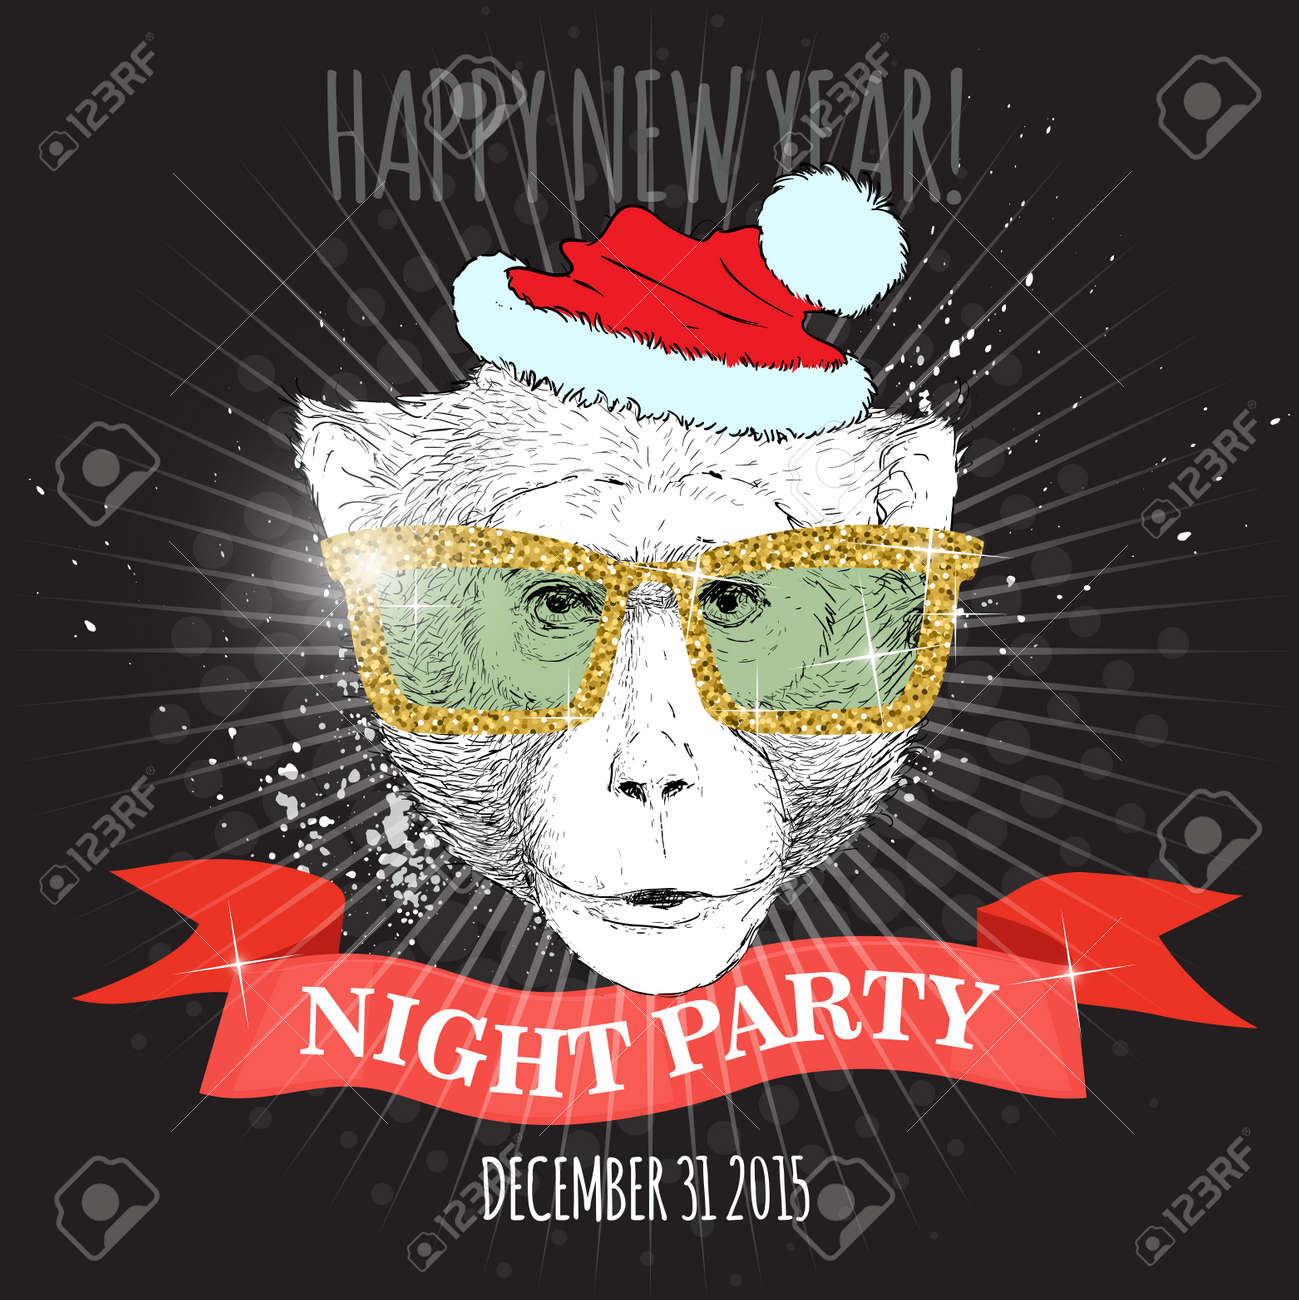 happy new year night party poster macaque monkey hipster with glitter glasses and christmas hat